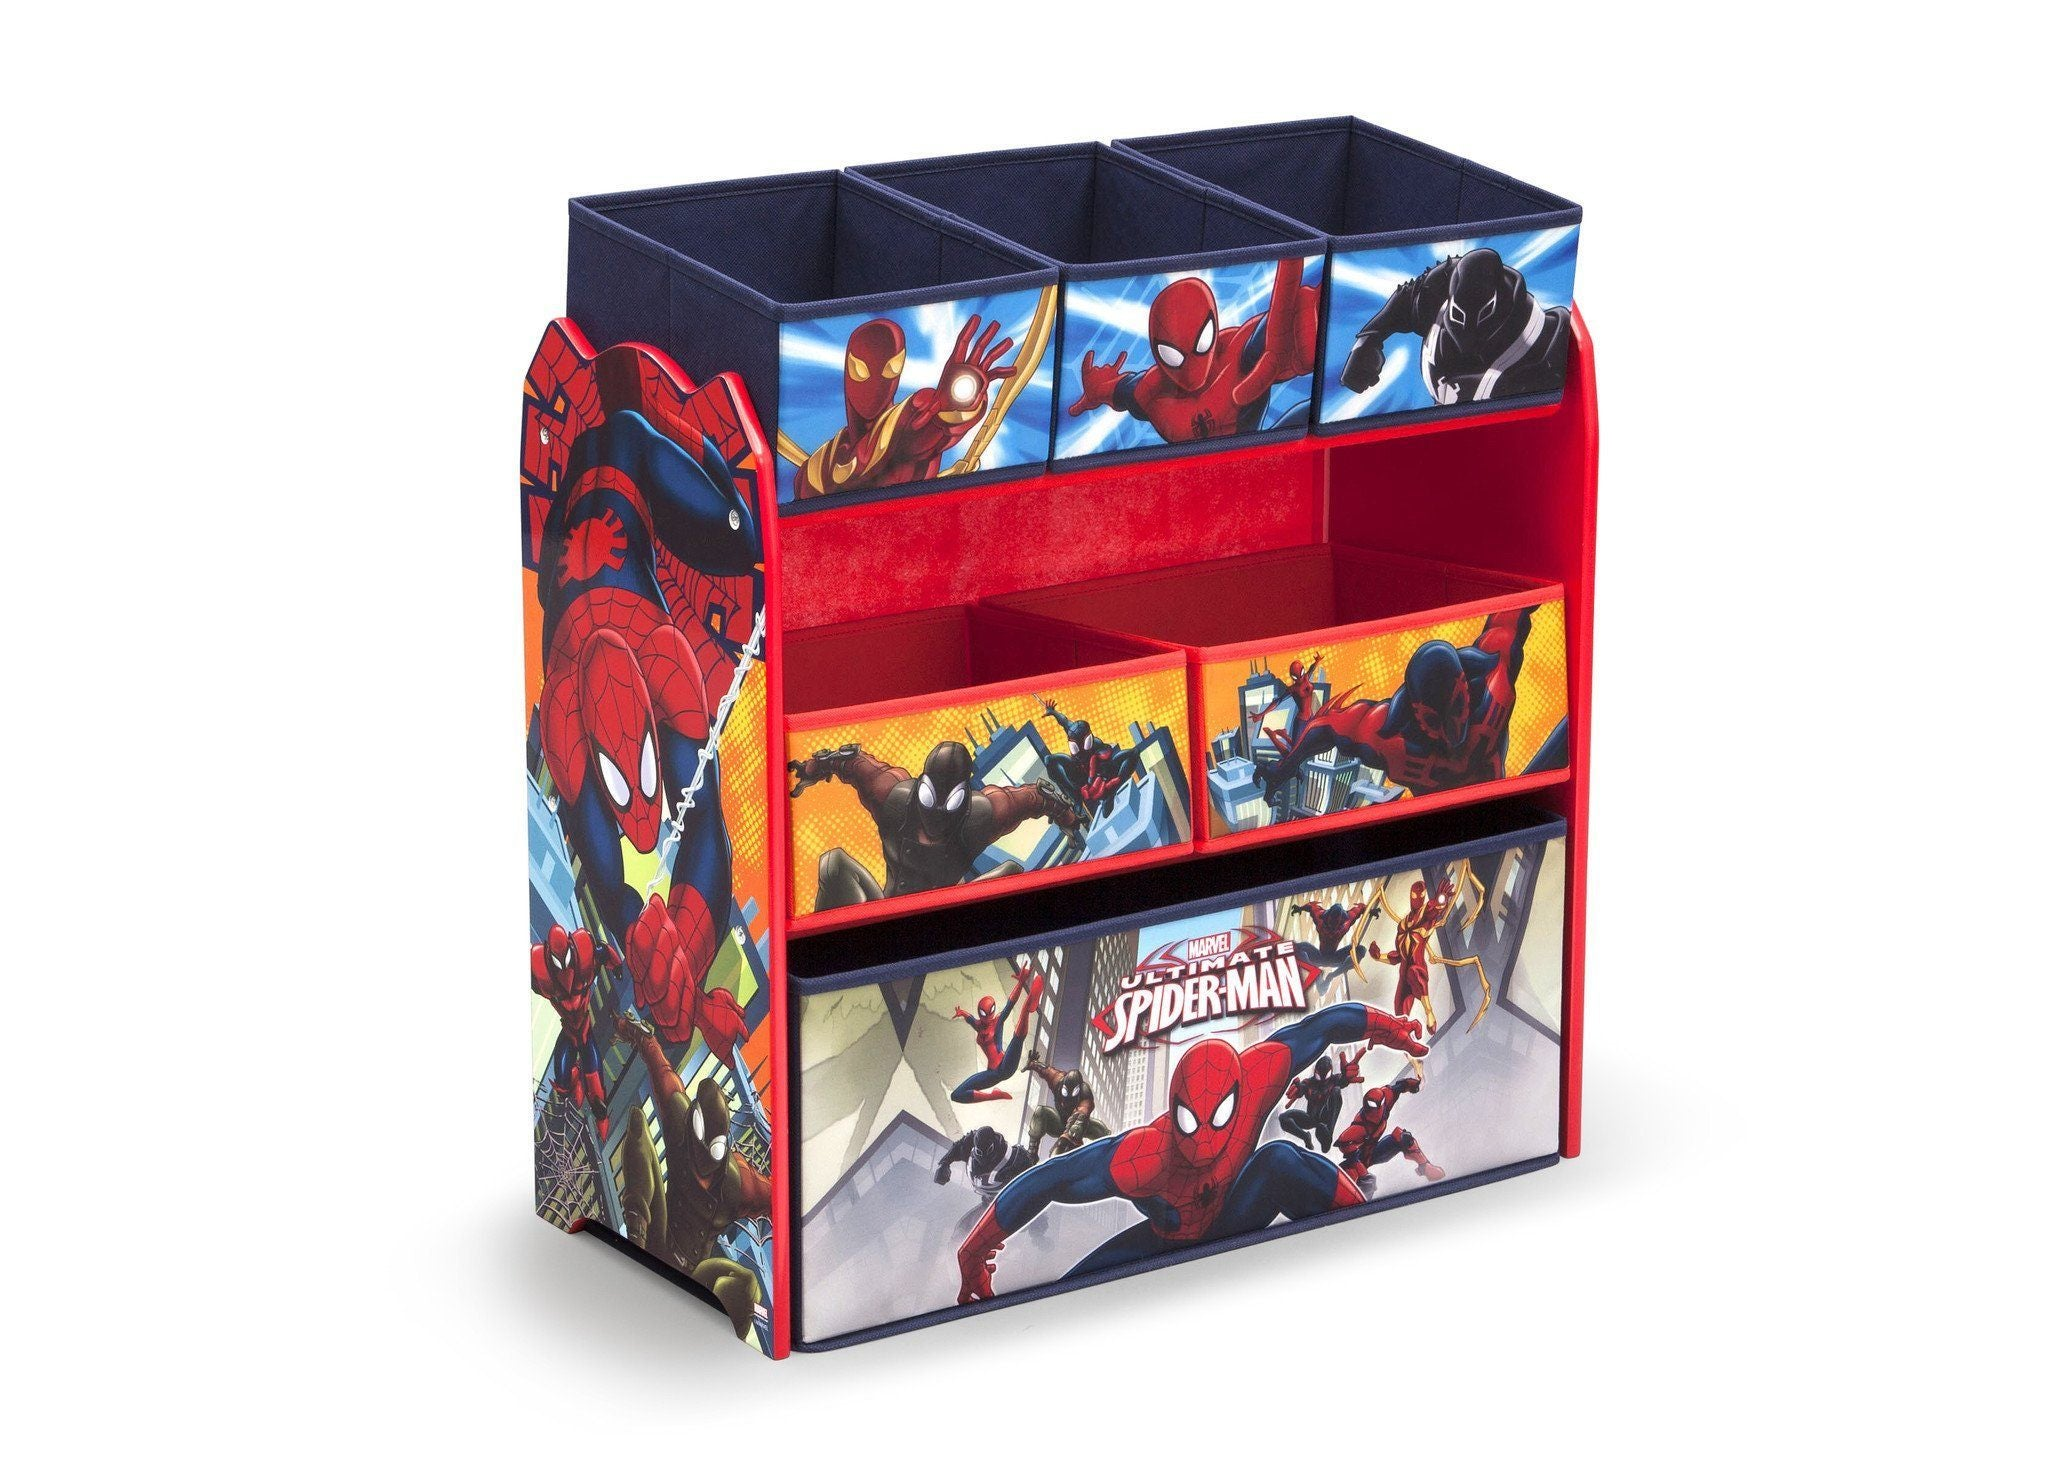 Delta Children Spider-Man Multi-Bin Toy Organizer, Right View a2a